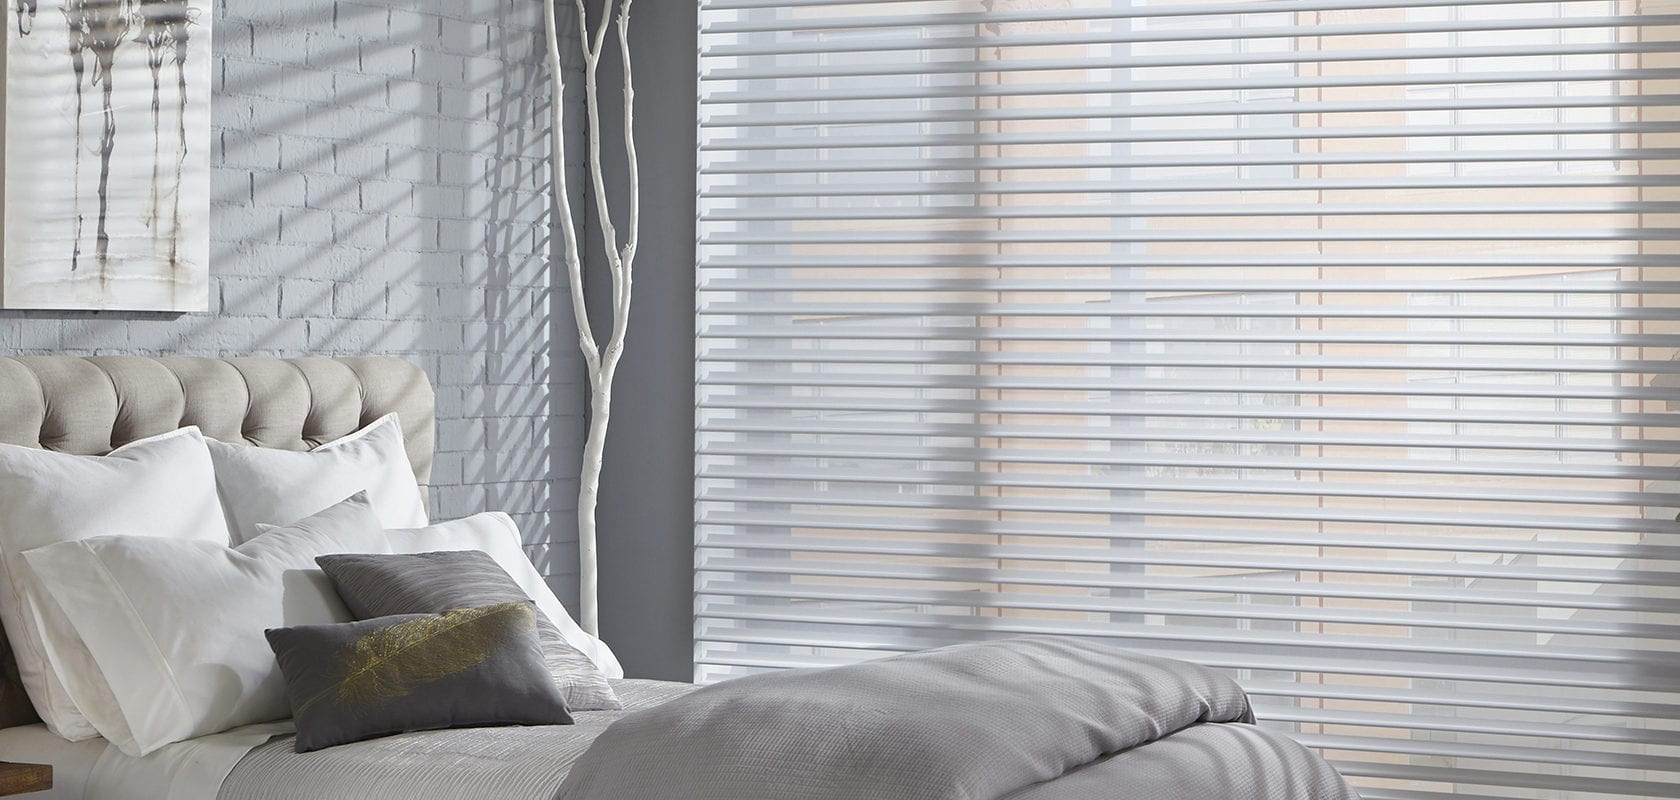 Image of bedroom with sheerluxe blinds